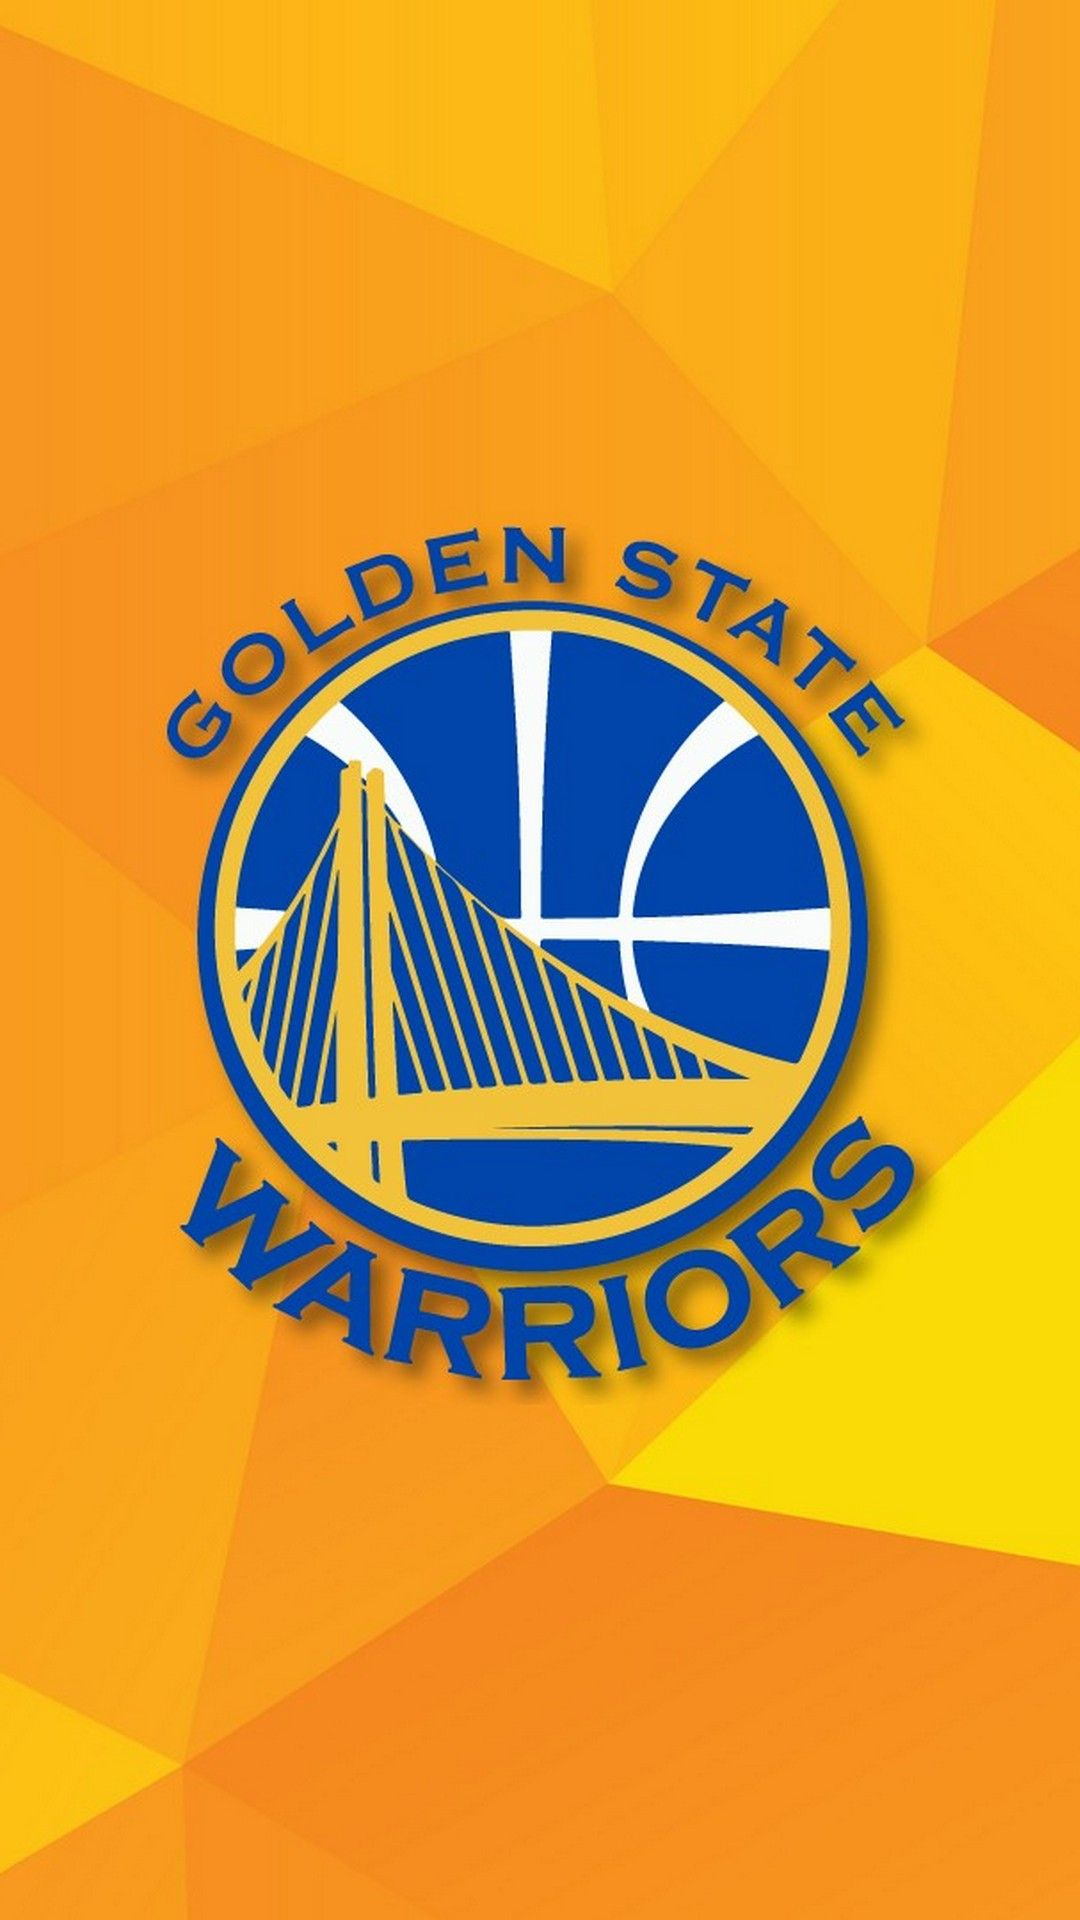 Golden State Warriors Backgrounds For Mobile Golden State Warriors Wallpaper Golden State Warriors Golden State Warriors Logo